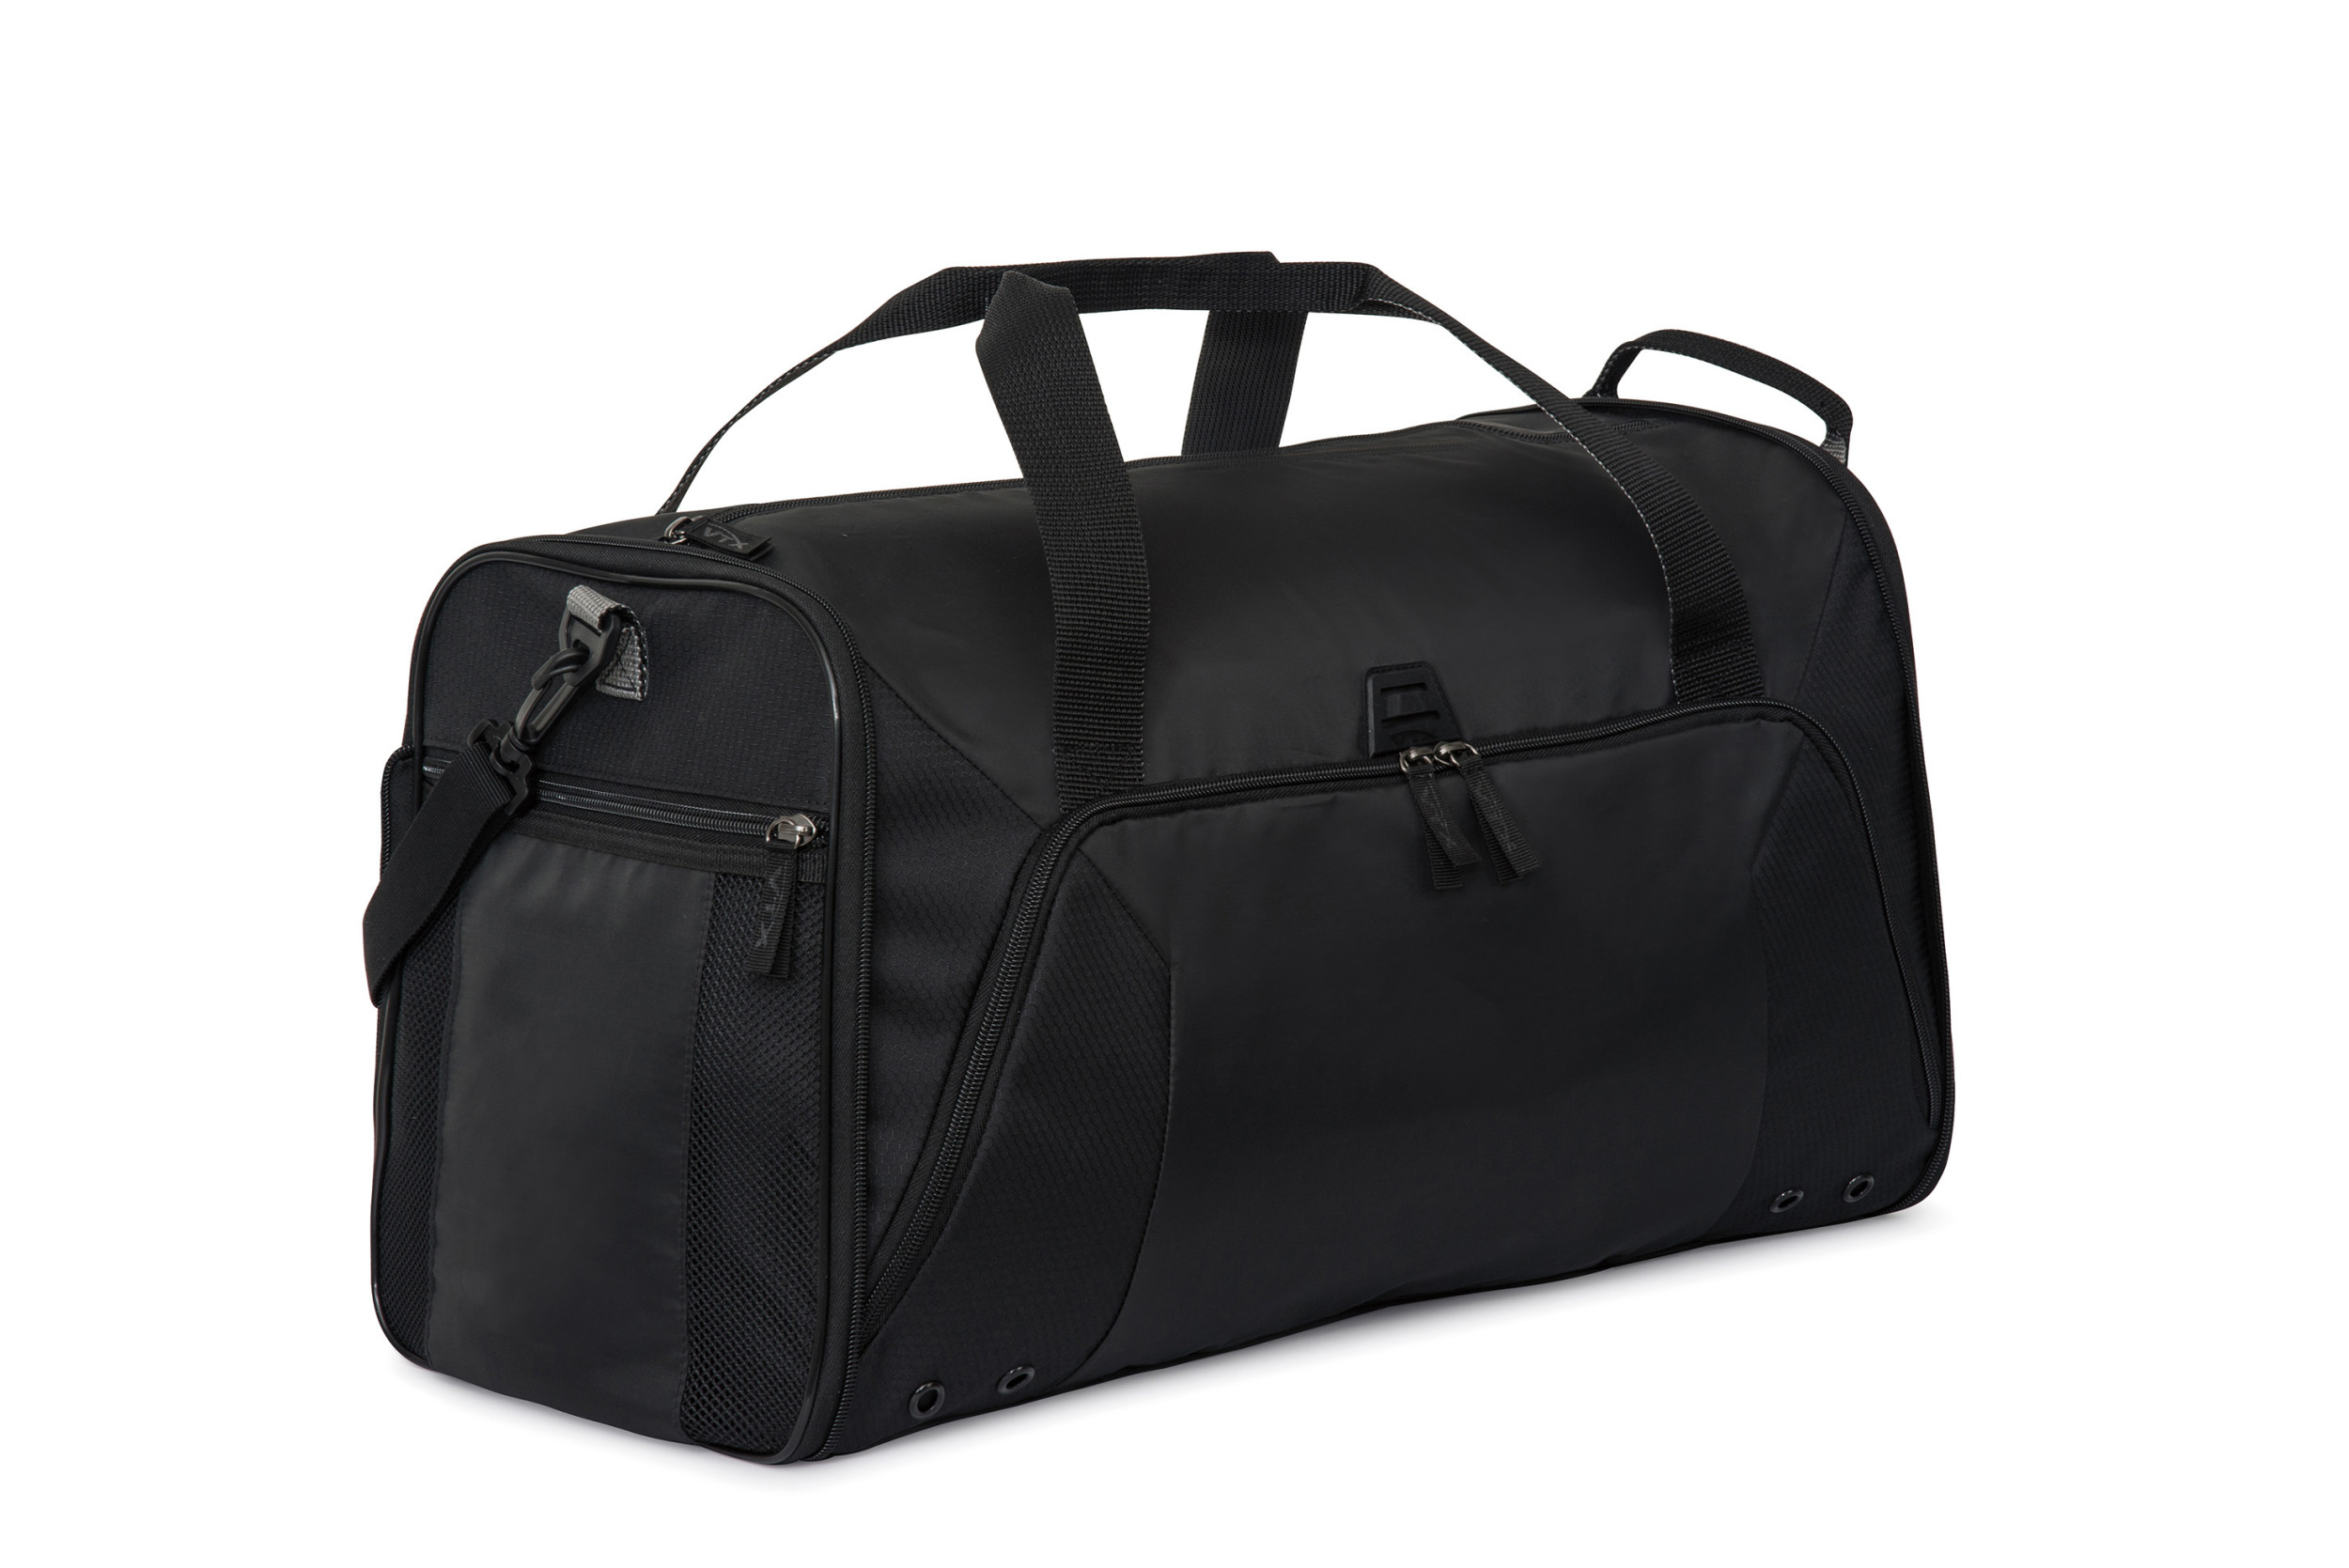 Vertex 4258 - Fusion Packable Duffel